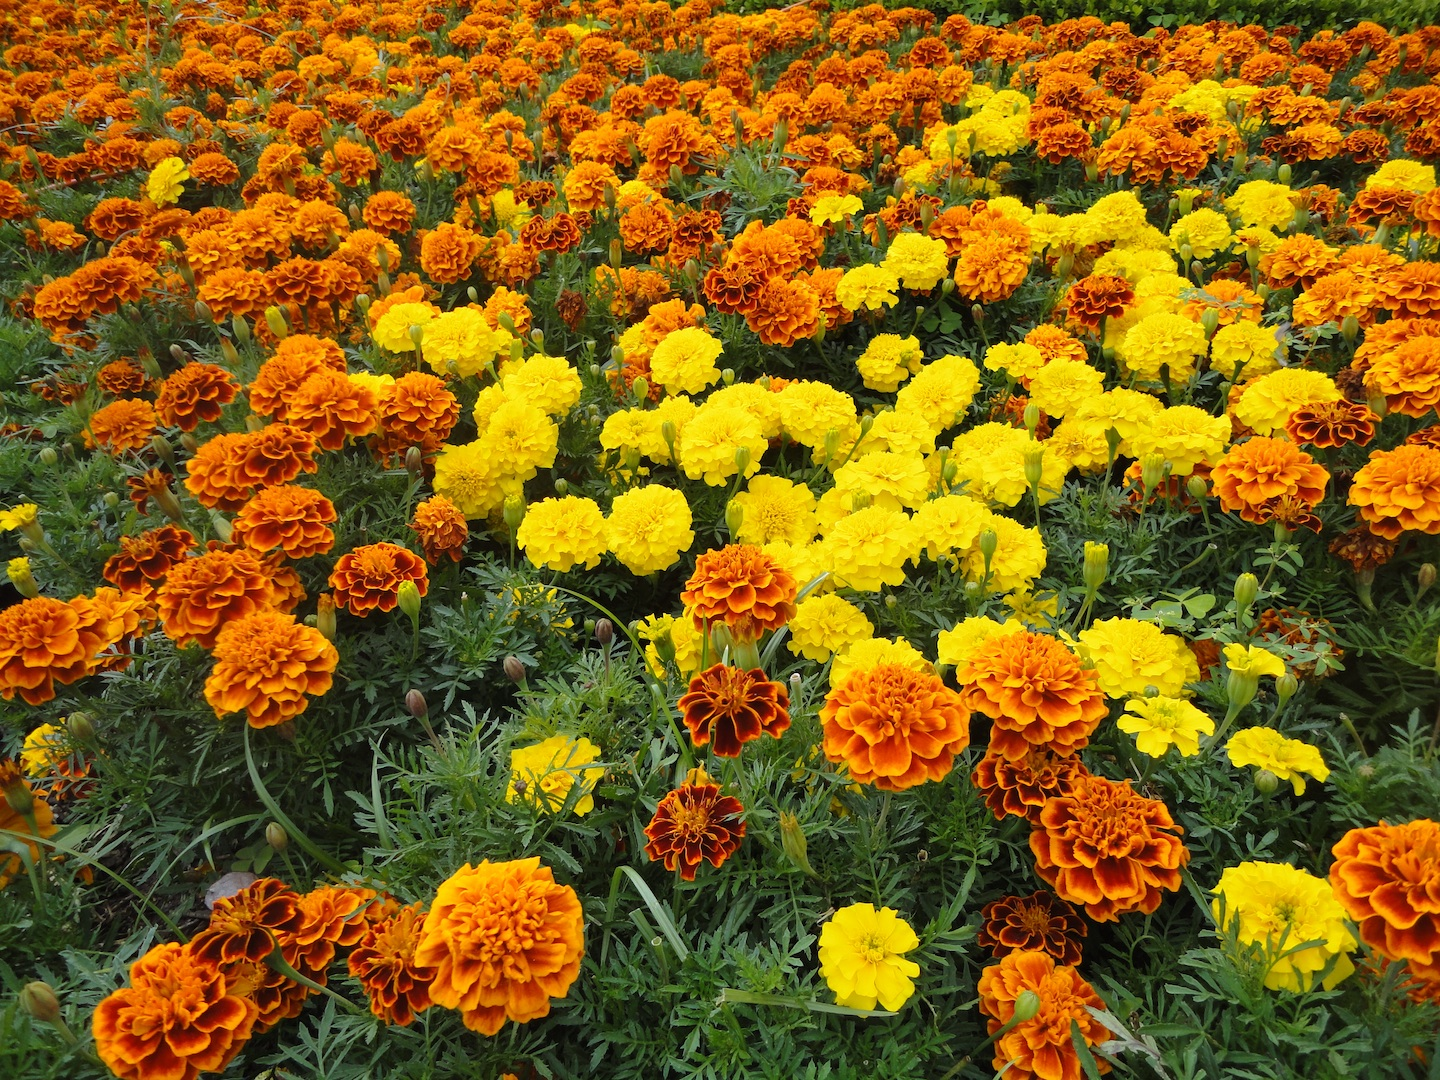 Marigolds are used for both Canal Pixan and Day of the Dead altars.